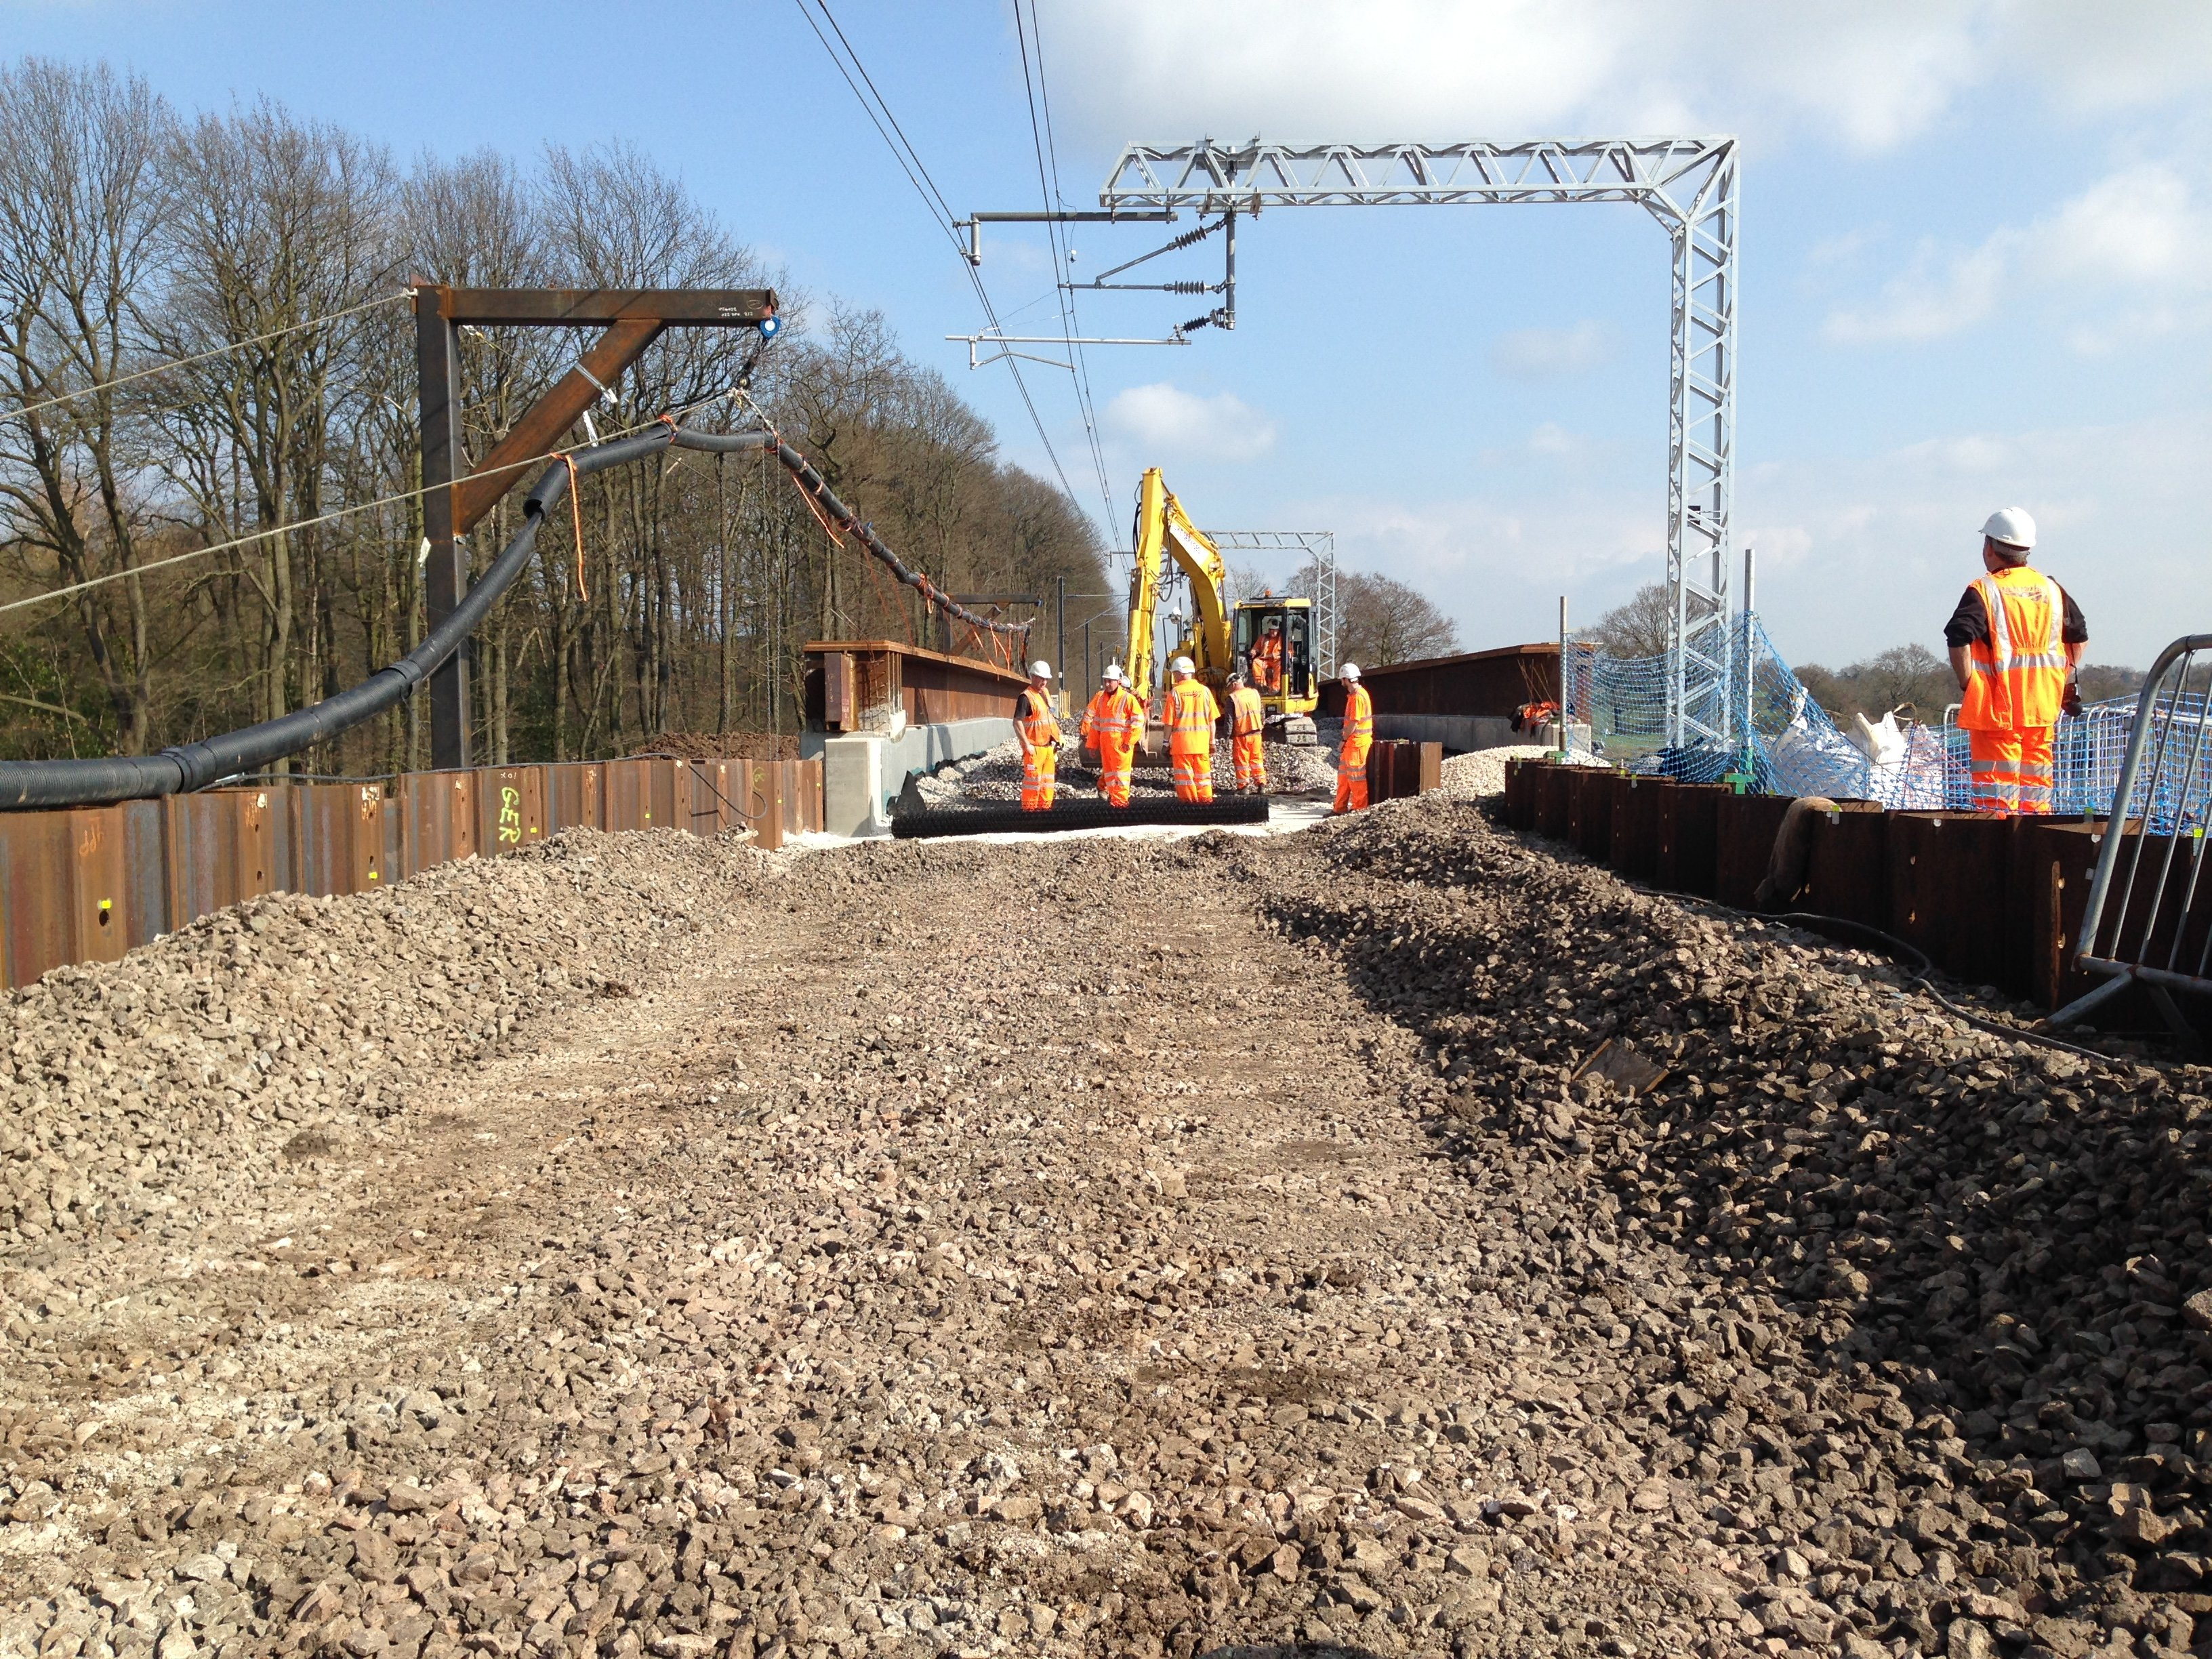 The benefits of stabilising geogrids on the railway